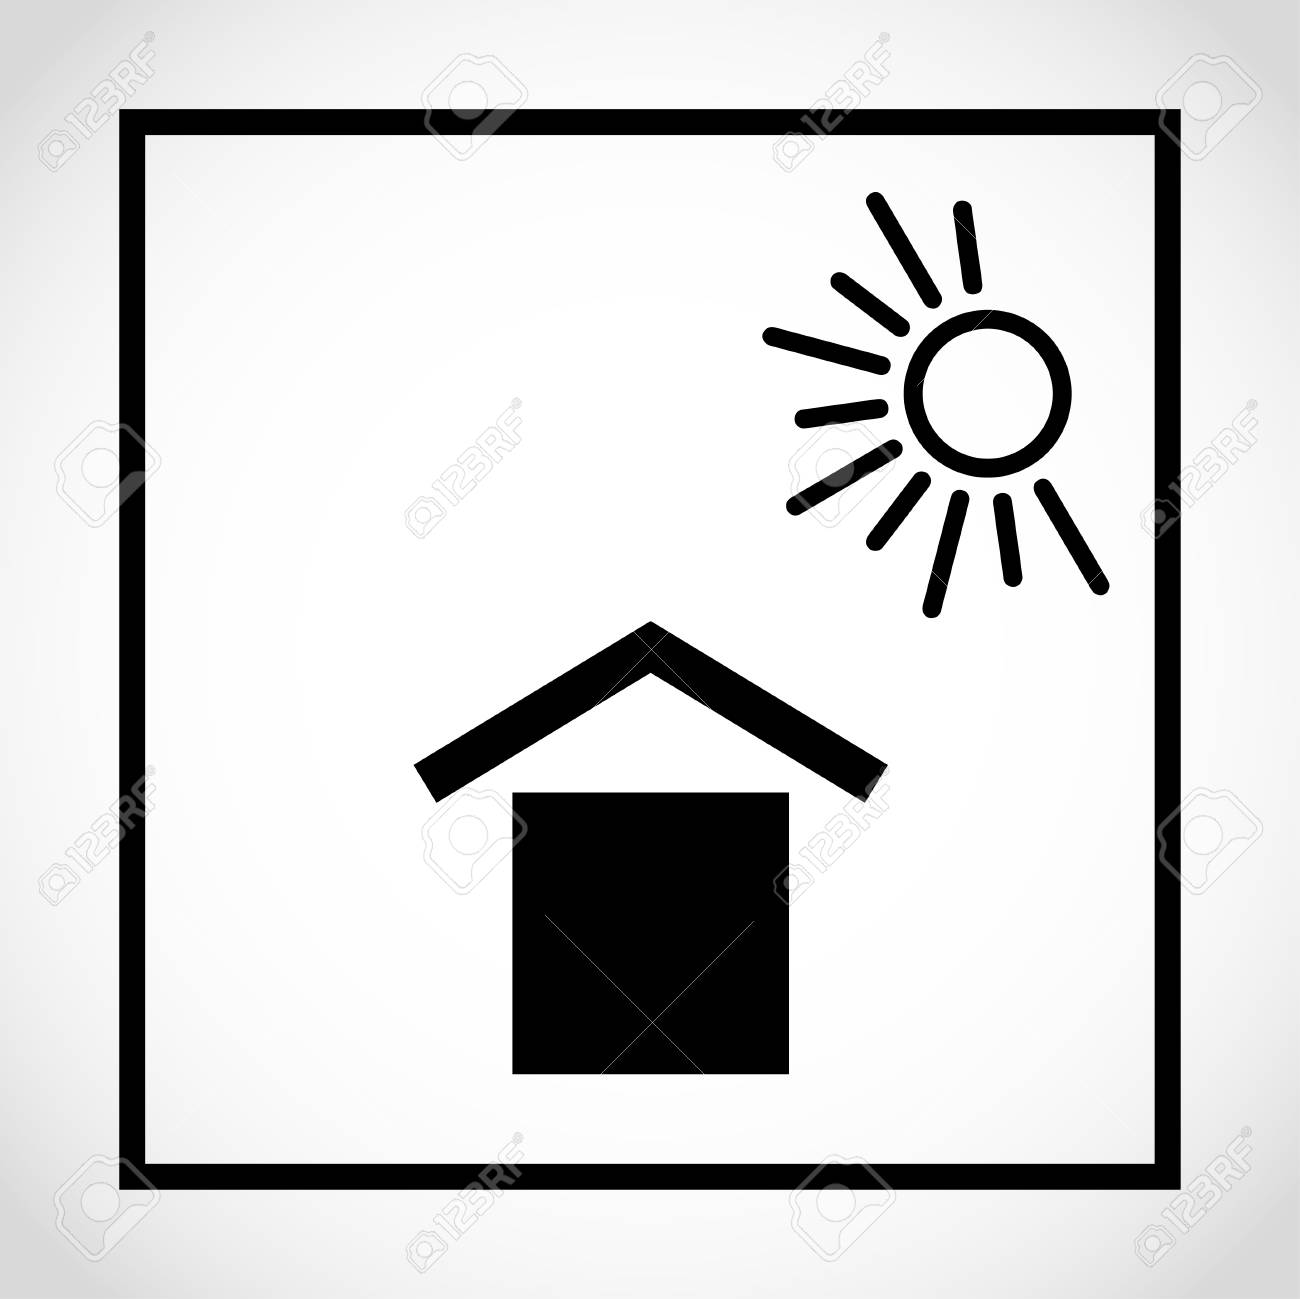 Keep Away From Sunlight Packaging Pictorial Marking For Handling